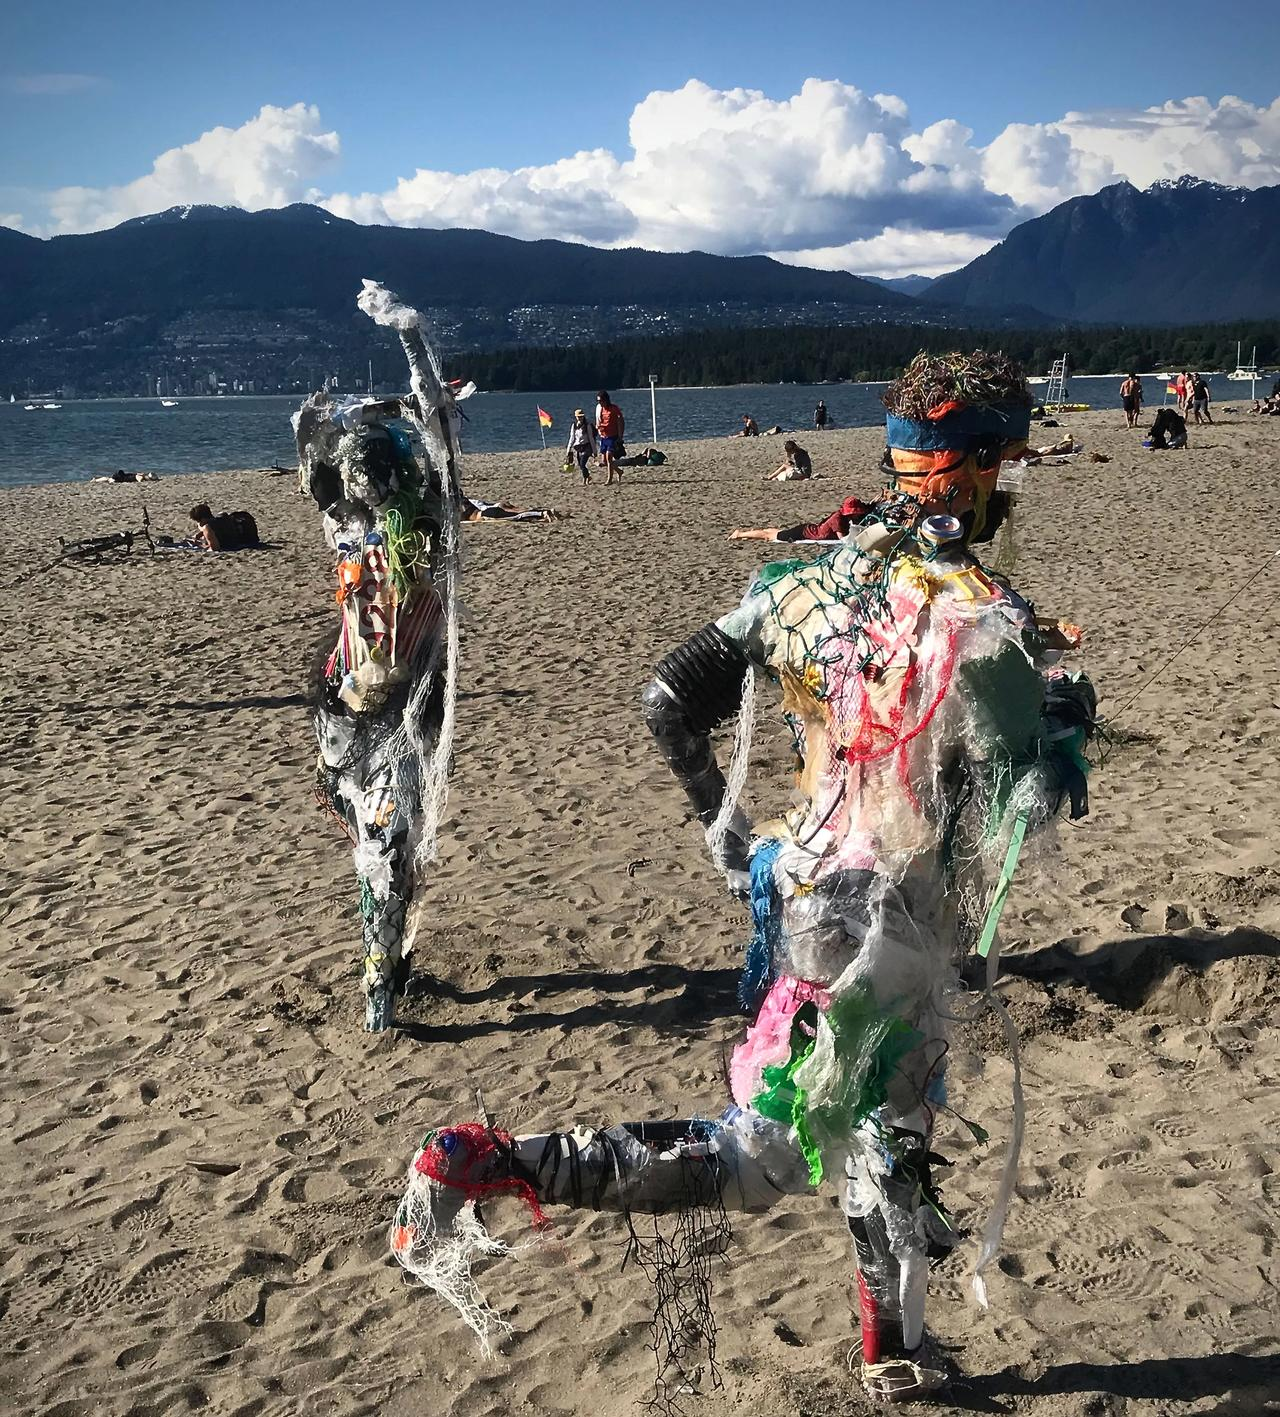 Caitlin Doherty's installation of figures made of sea trash on the beach in Kitsilano, Vancouver Photo: Hadani Ditmars